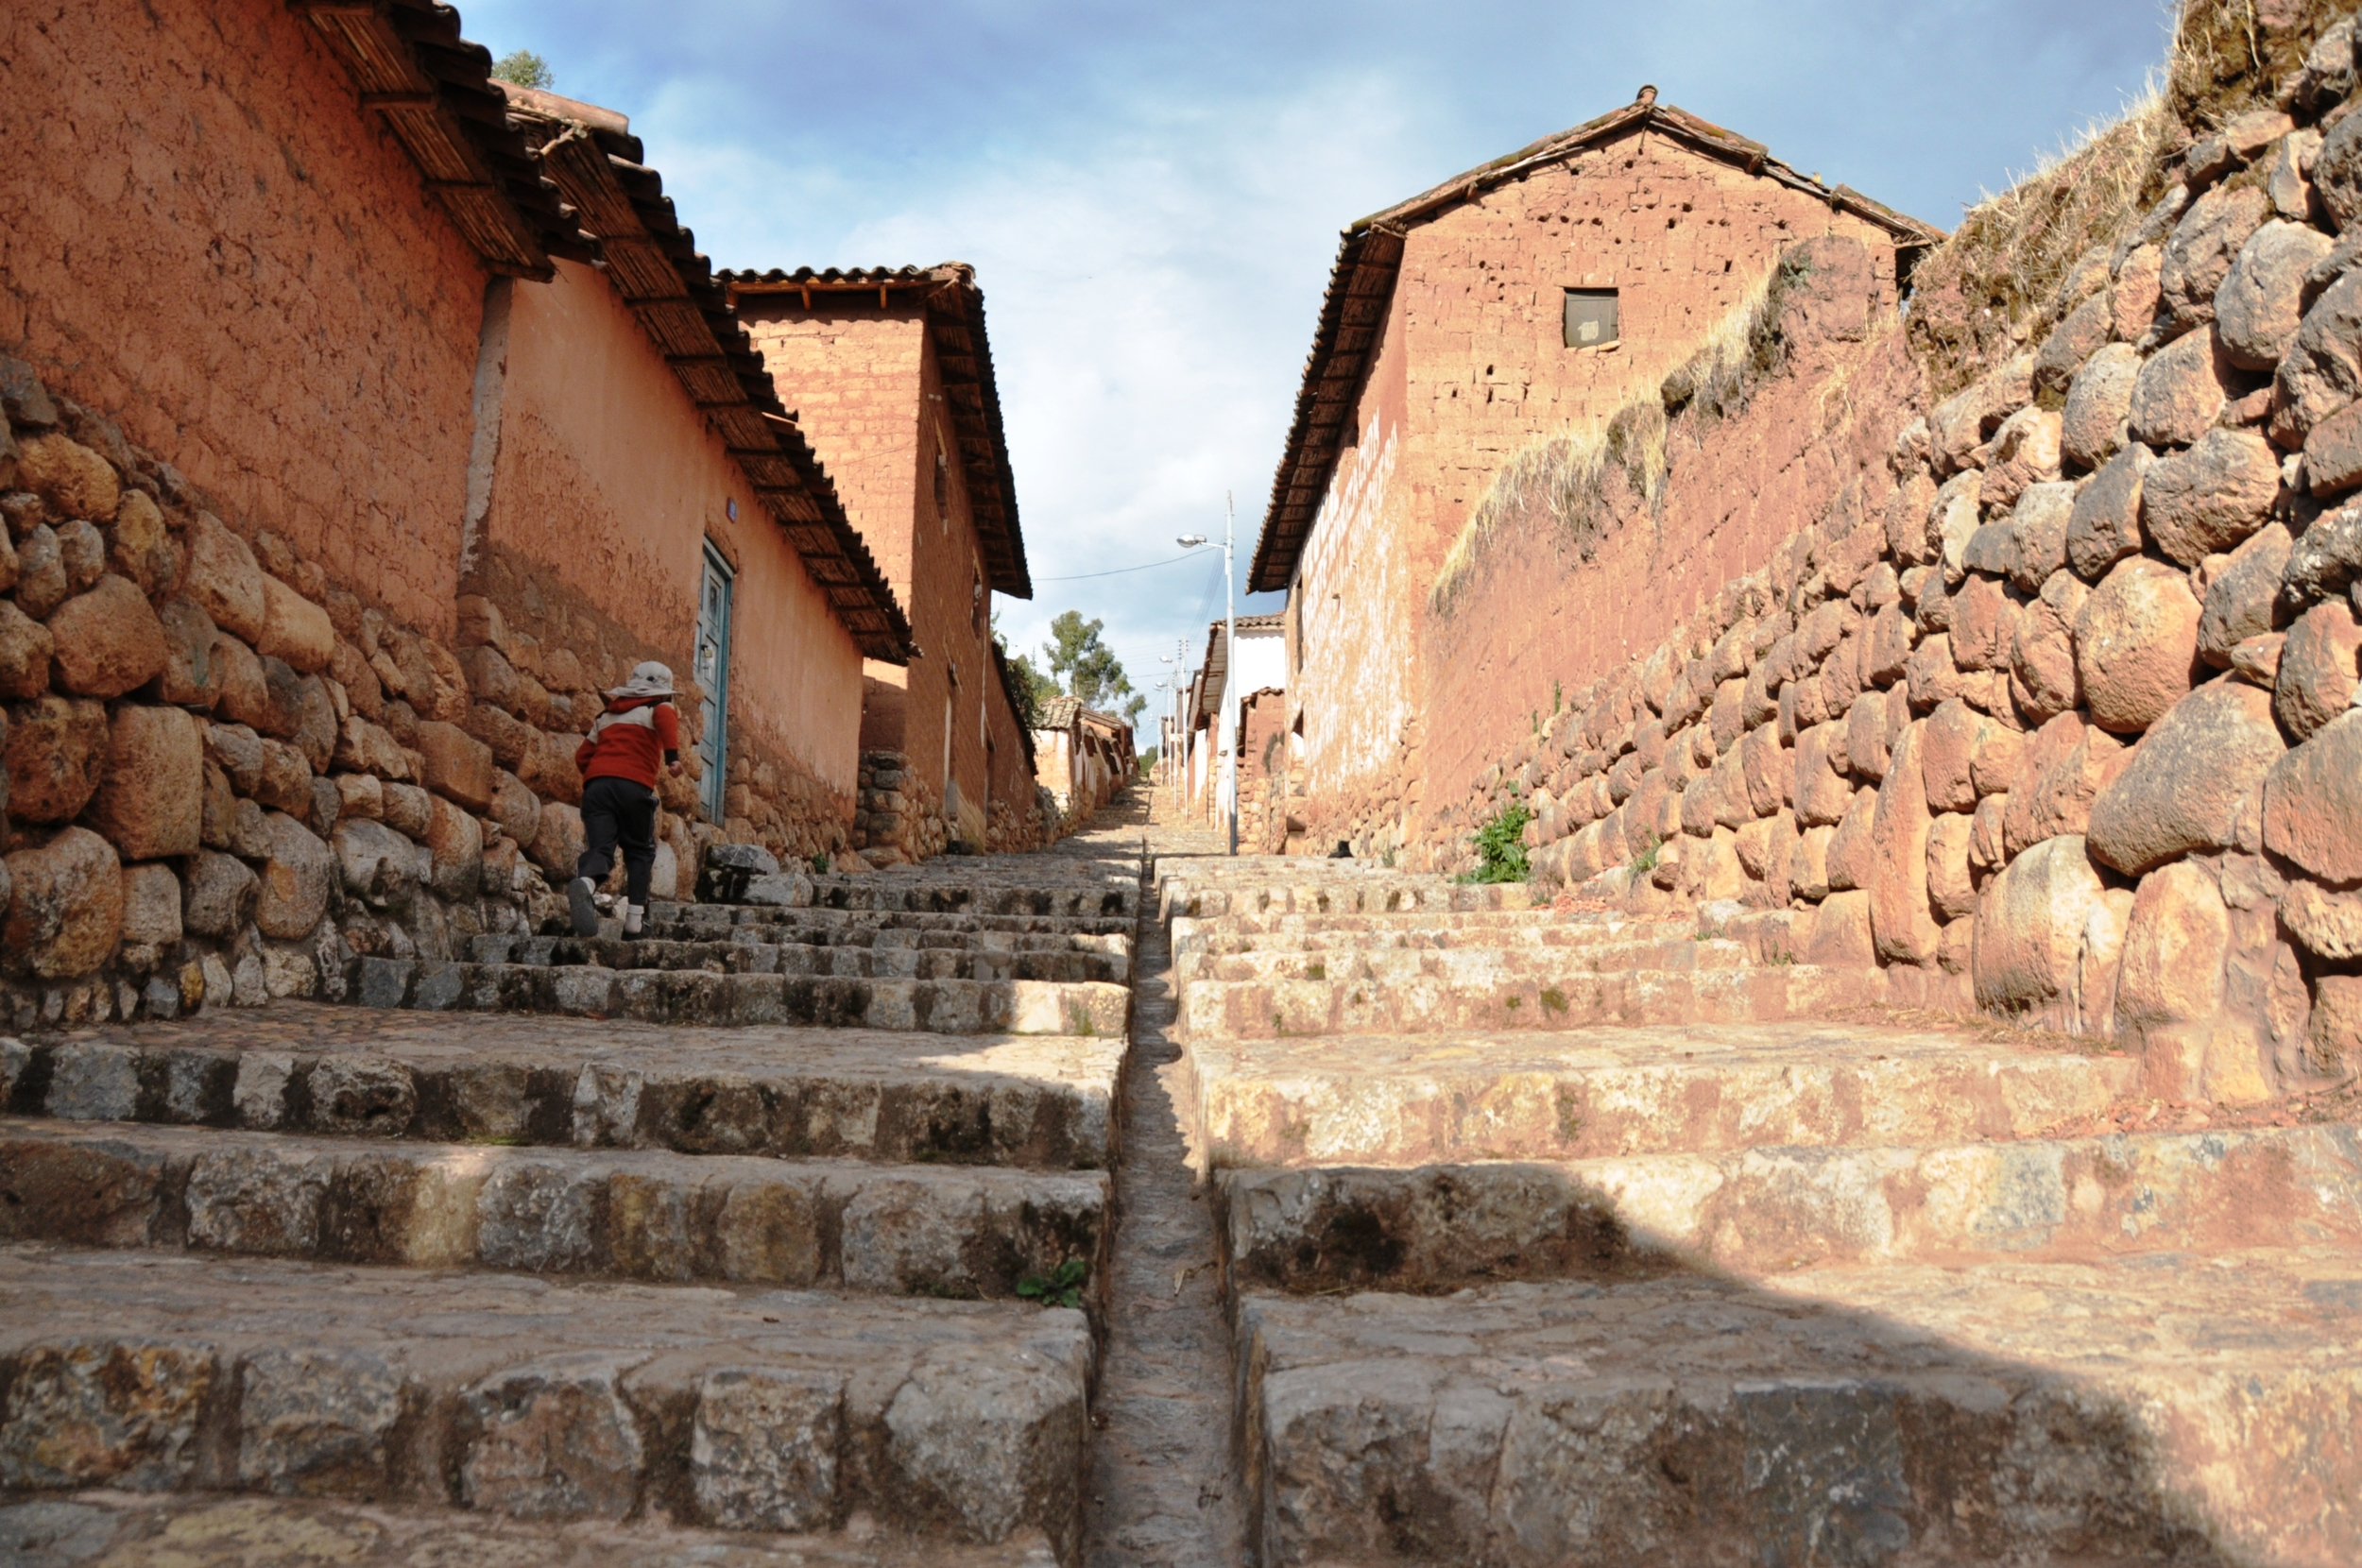 walking up to chinchero - steeper and harder than it looks, but the kid ran up!